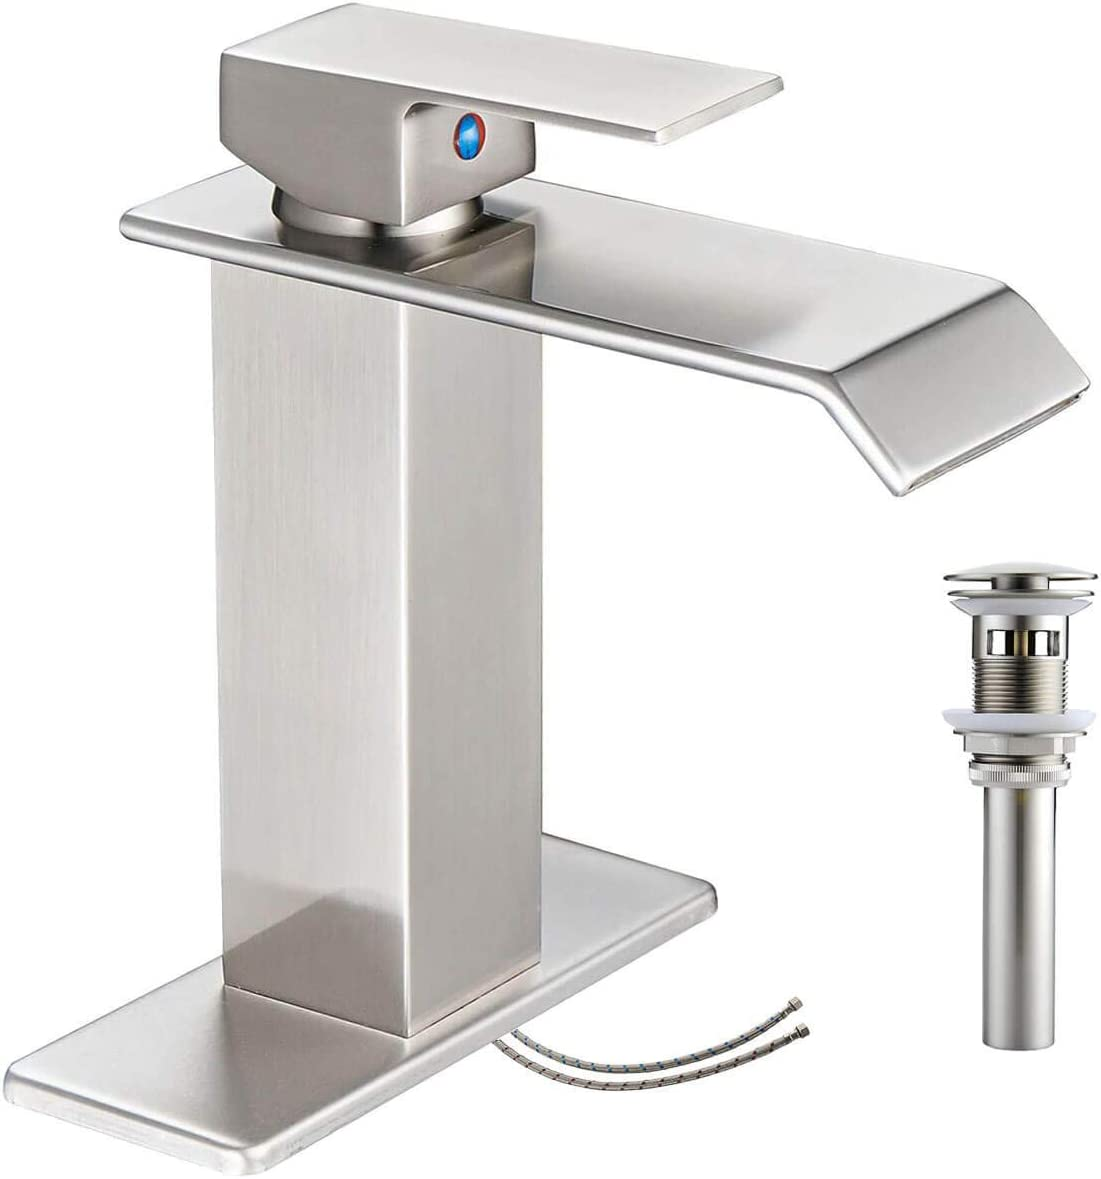 Bathroom Faucet Brushed Nickel Single Hole Waterfall Vanity Sink Satin with Pop Up Drain Assembly One Handle Basin Mixer Tap with Overflow Commercial Supply Line Lead-Free by Bathlavish